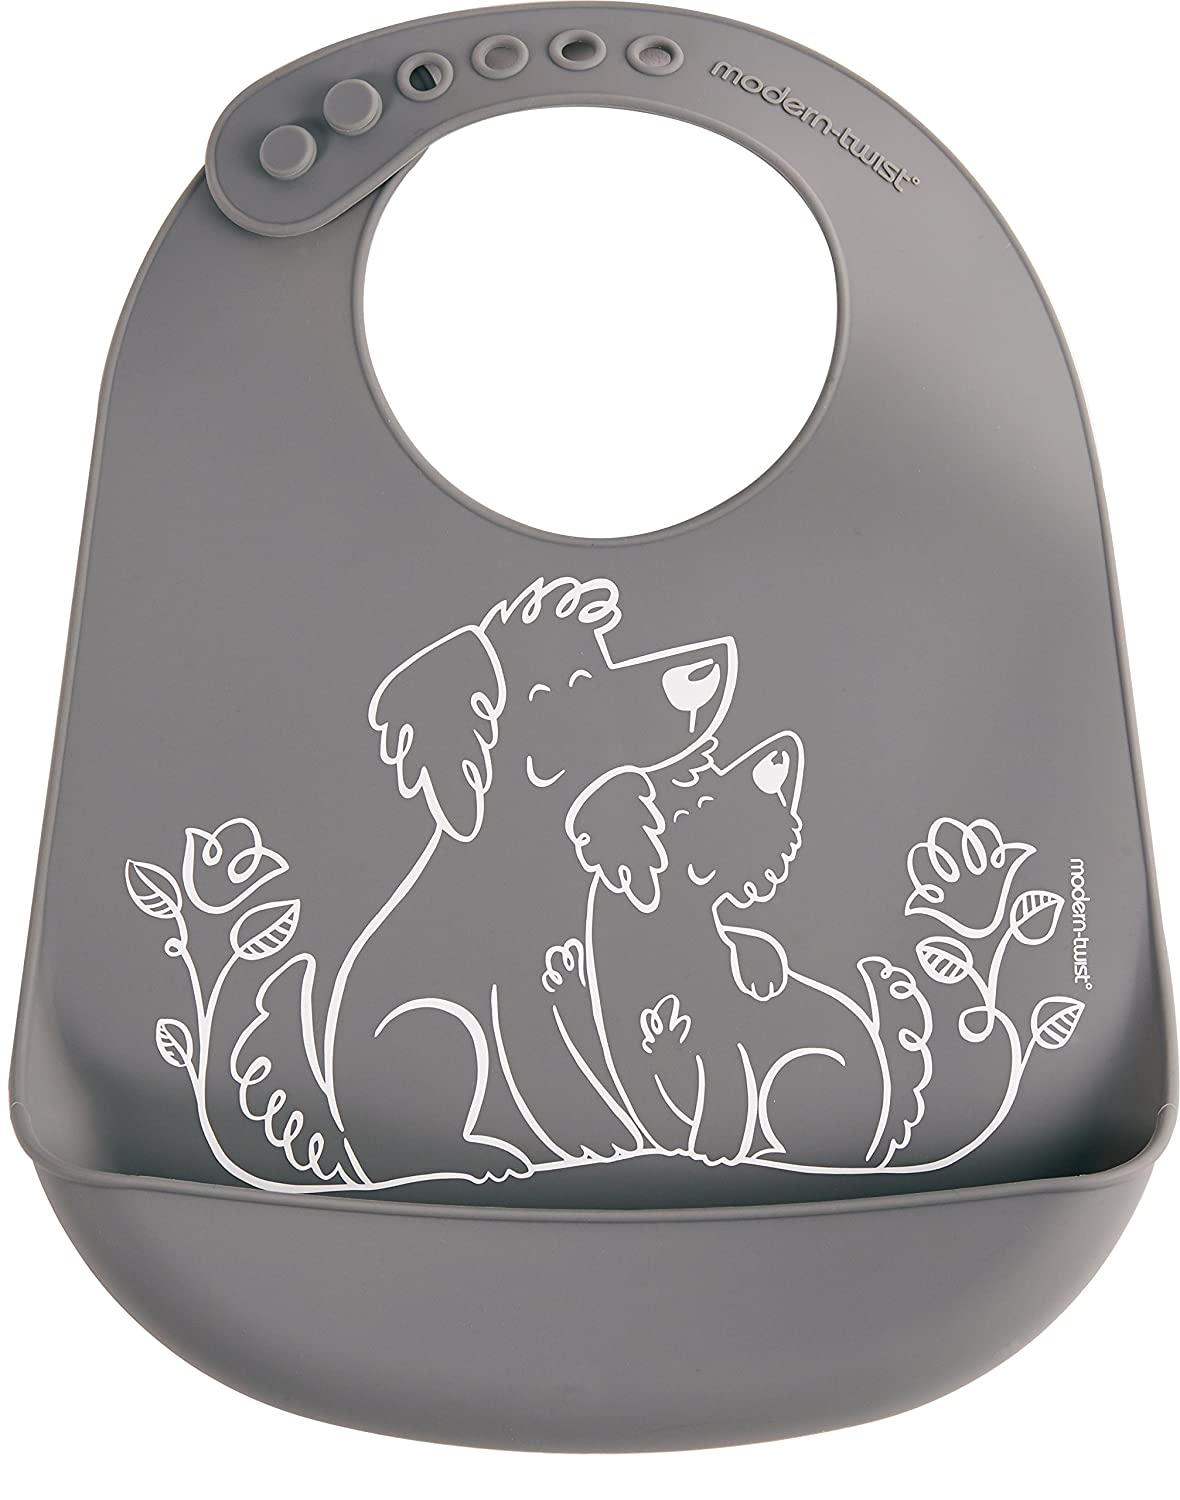 modern-twist Bucket Bib 100% plastic free silicone waterproof, adjustable, dishwasher safe, Bucket Bib, Gray Puppy Love